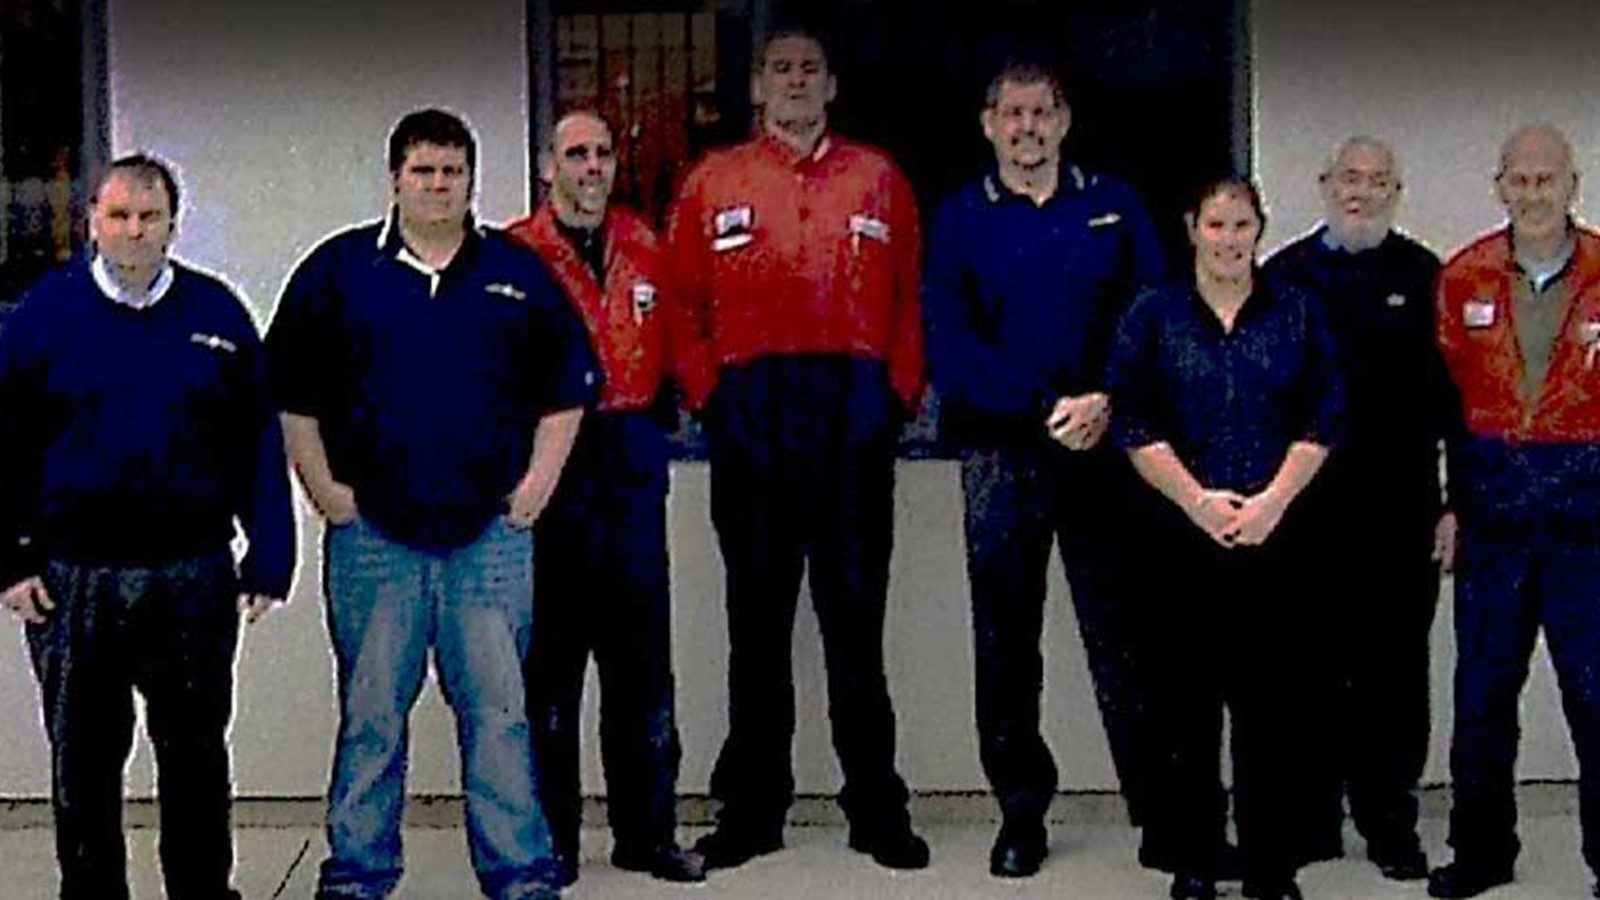 Truckstops New Zealand technicians posed for a picture in 2007